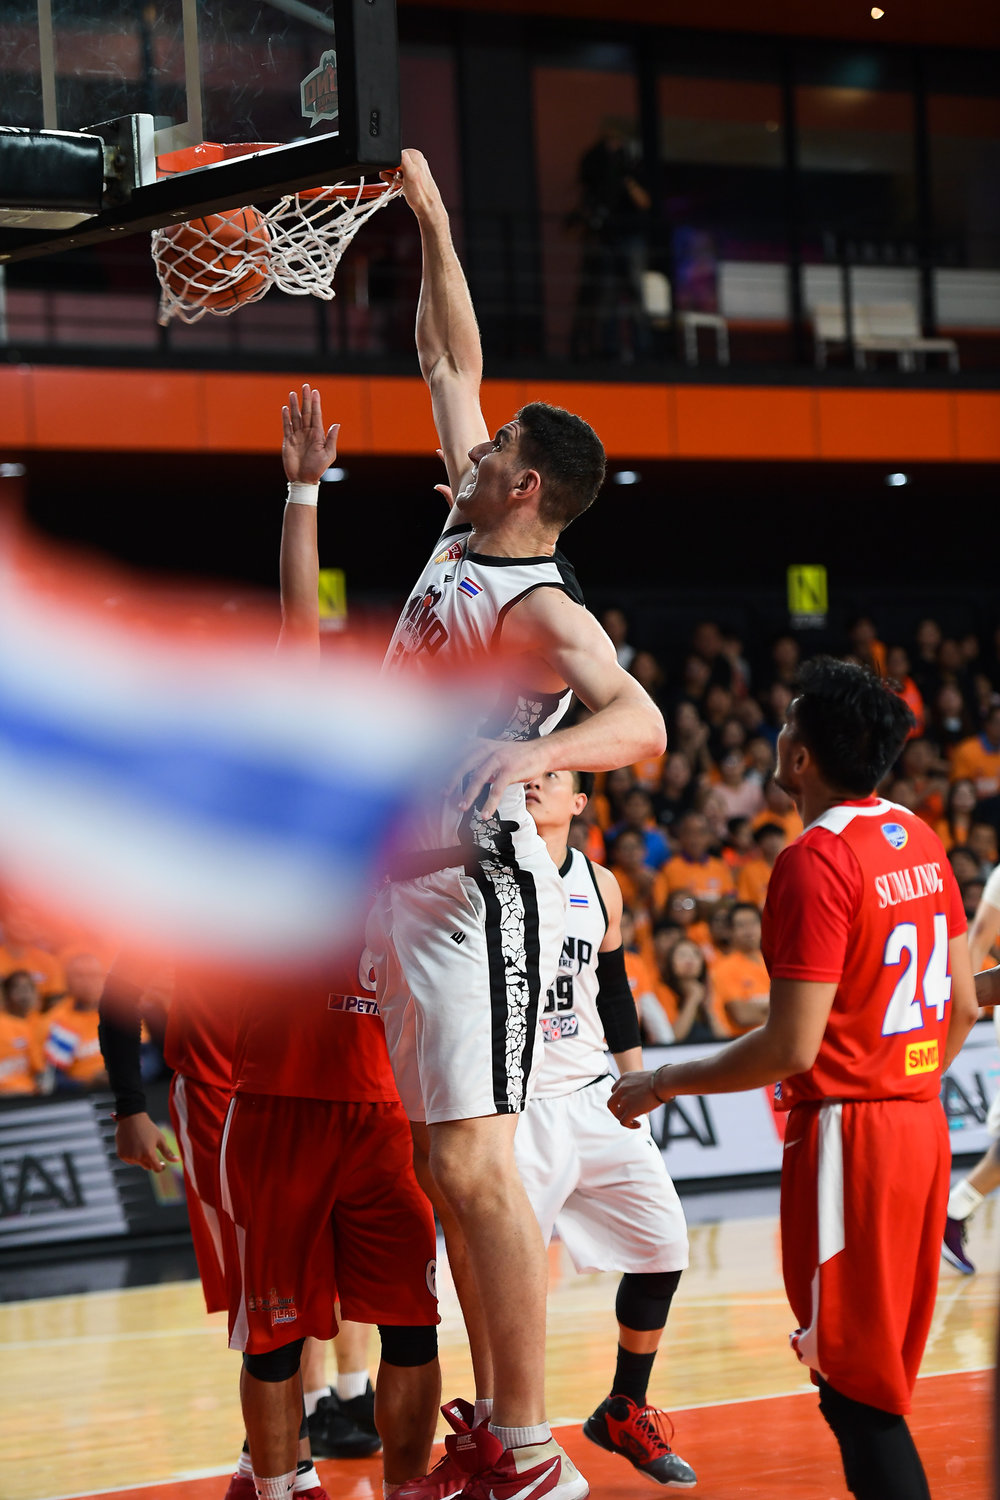 BANGKOK, THAILAND - APRIL 30: Samuel Deguara (21) of MONO Vampire Basketball Club dunking during Game 4 of the Finals Asean Basketball League 2017-2018, Mono Stadium 29, Bangkok, Thailand on April 30, 2018. (Photo by: Naratip Golf Srisupab/SEALs Sports Images)